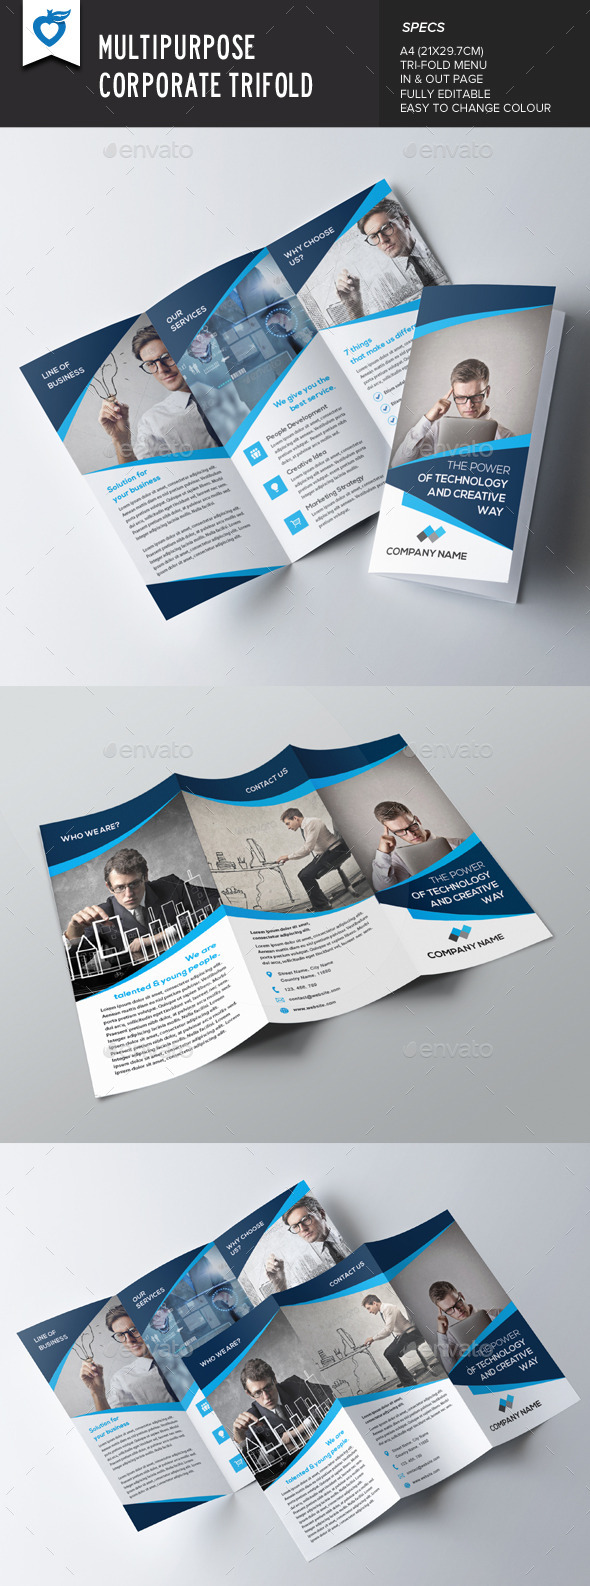 GraphicRiver Multipurpose Corporate Trifold 9345269